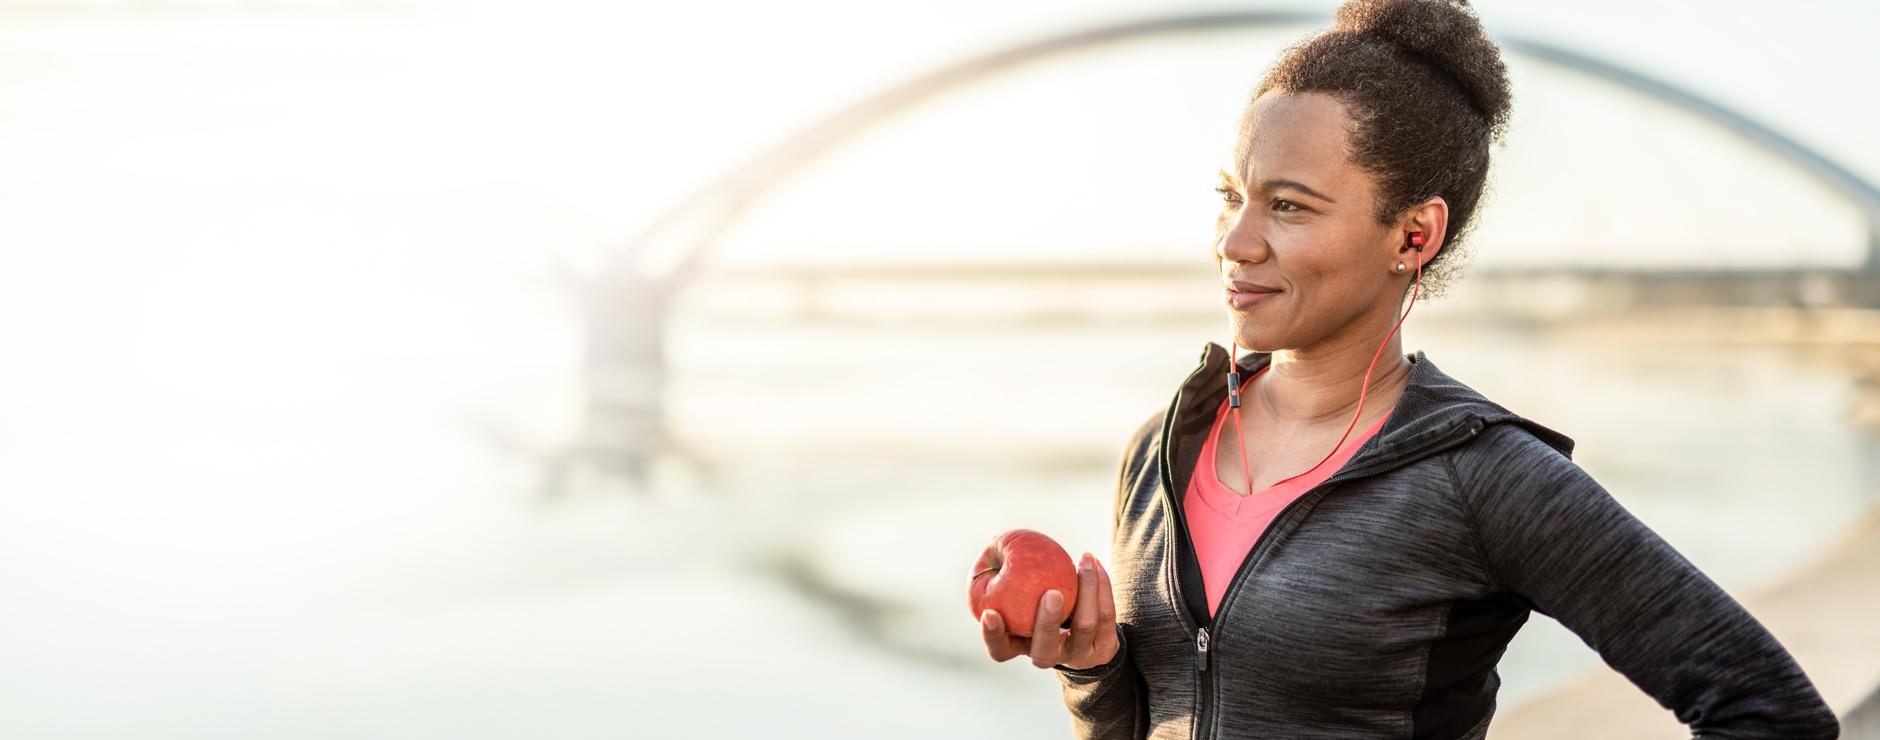 woman dressed in fitness gear holding an apple